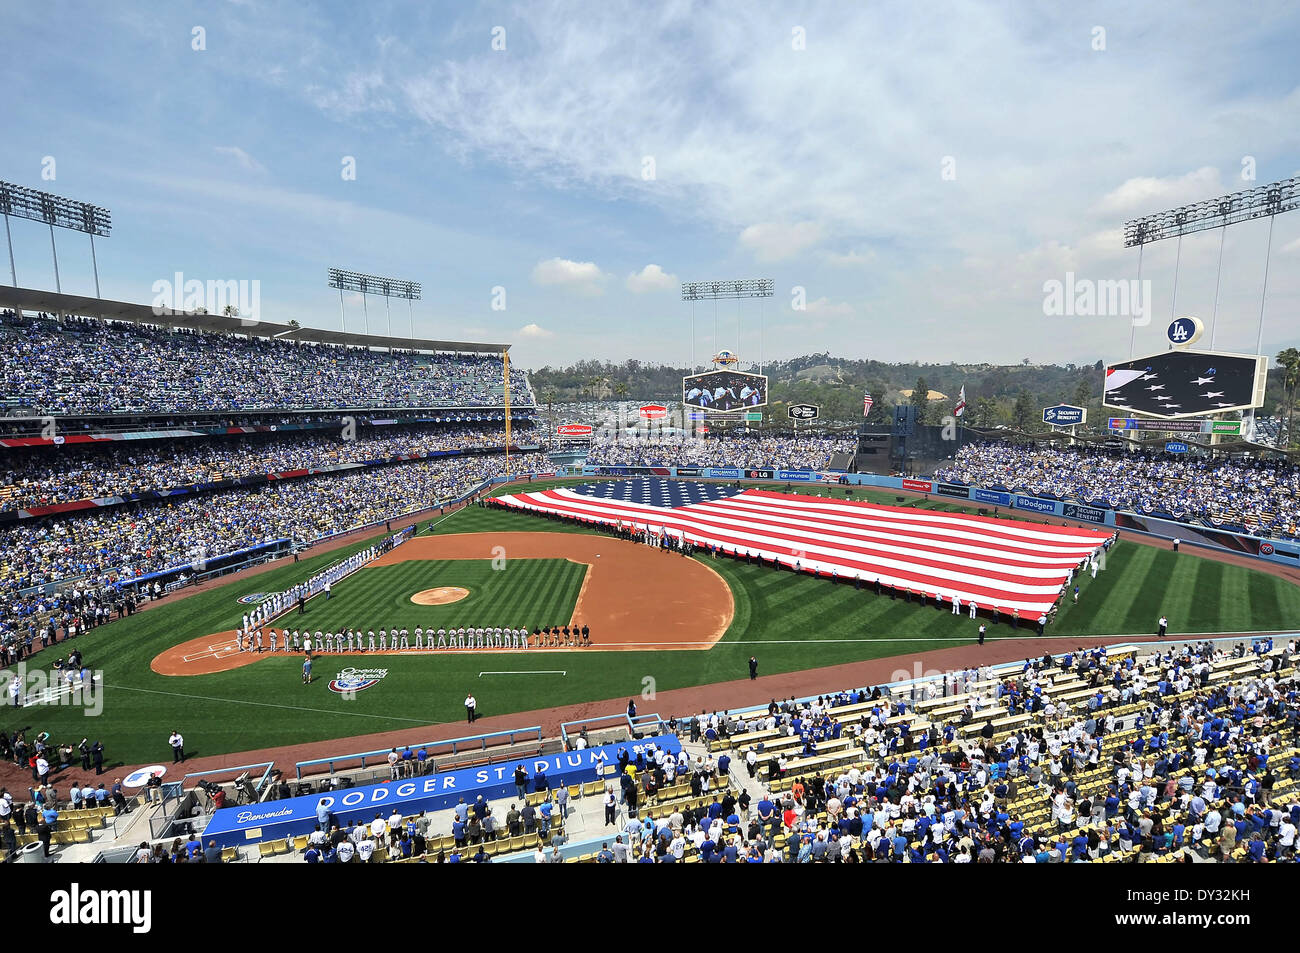 Los Angeles, CA, USA. 4th Apr, 2014. Opening Ceremonies before the Major League Baseball game Home Opener between the San Francisco Giants and the Los Angeles Dodgers at Dodger Stadium.Louis Lopez/CSM/Alamy Live News - Stock Image